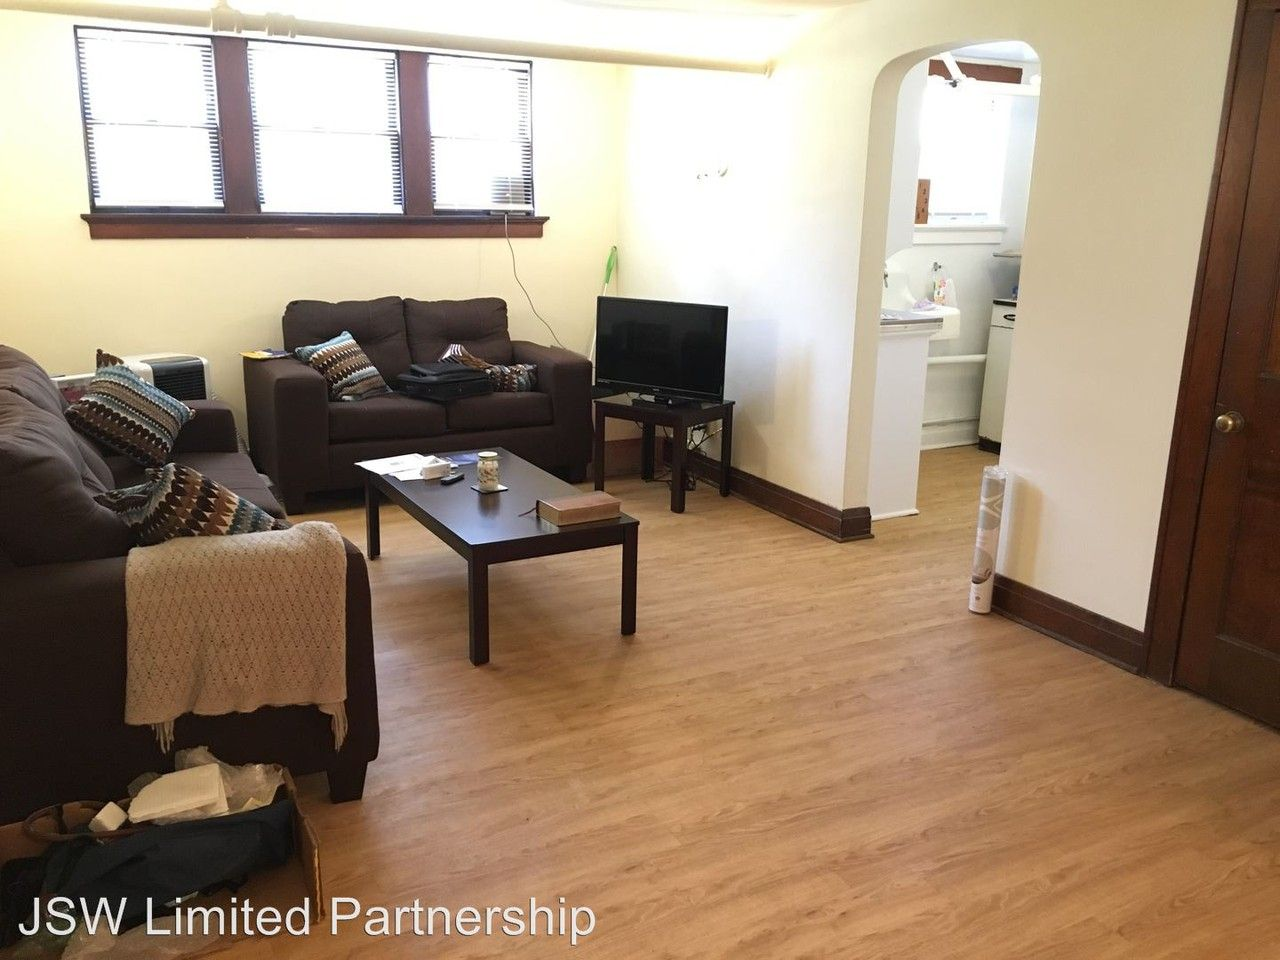 450 N Few St, Madison, WI 53703 - Apartment for Rent   PadMapper